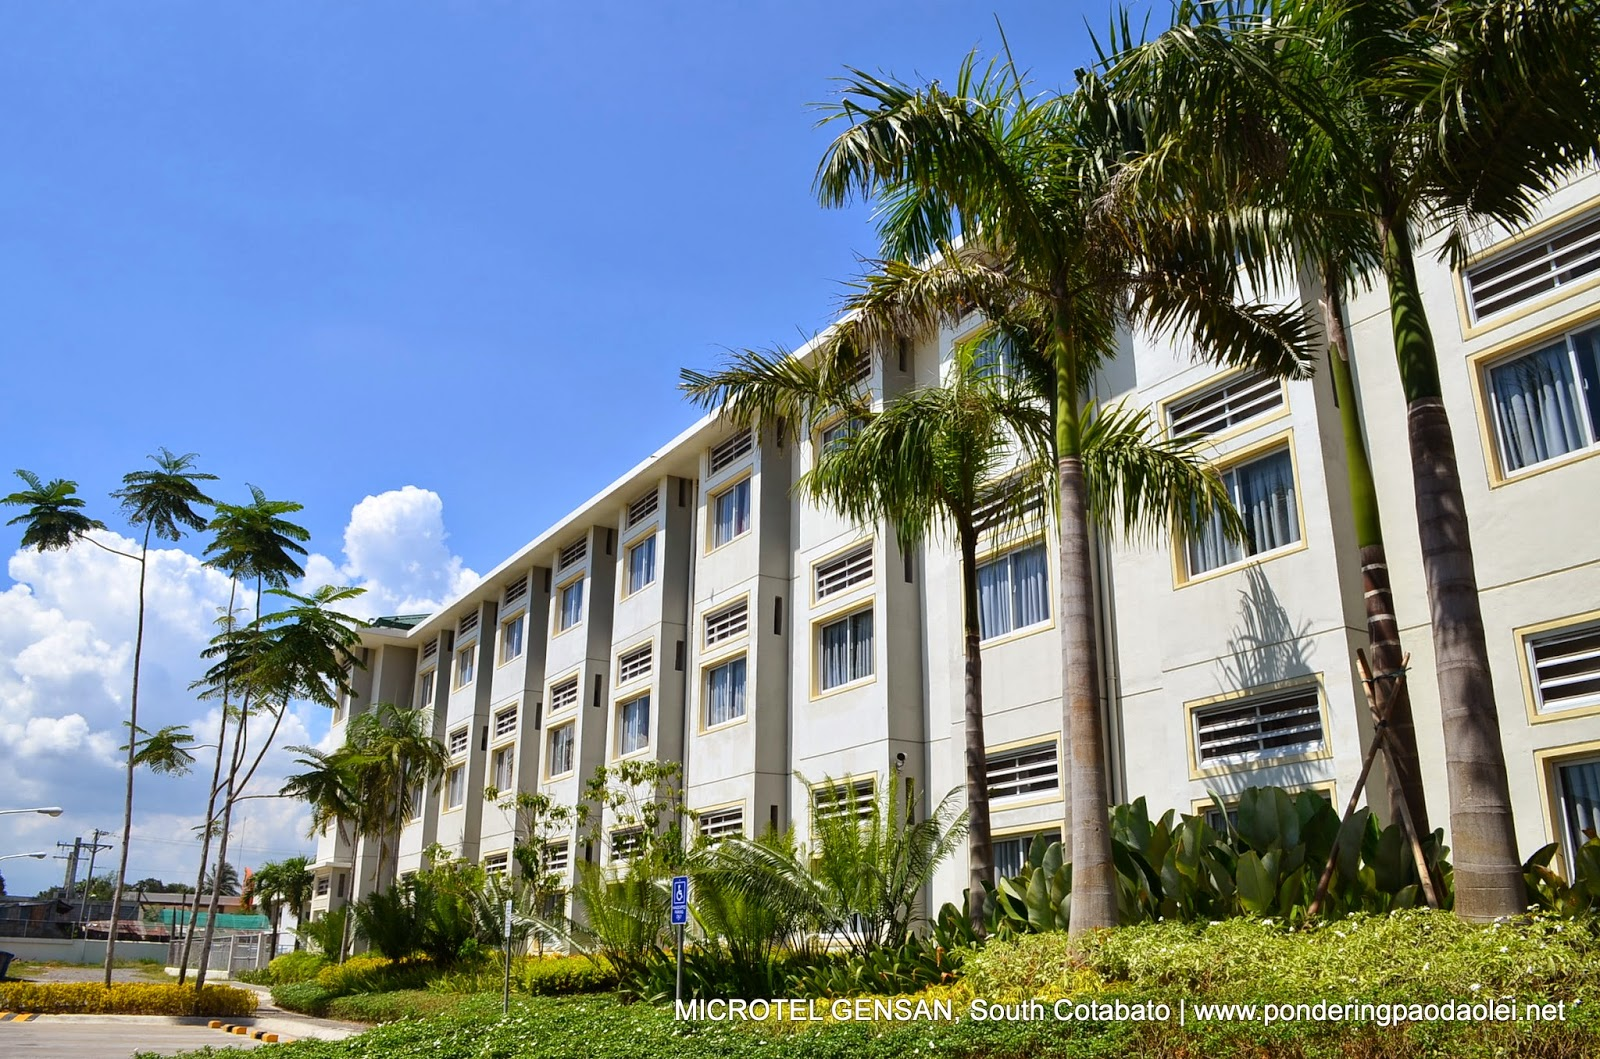 Microtel Gensan by Wyndham: The Better Choice